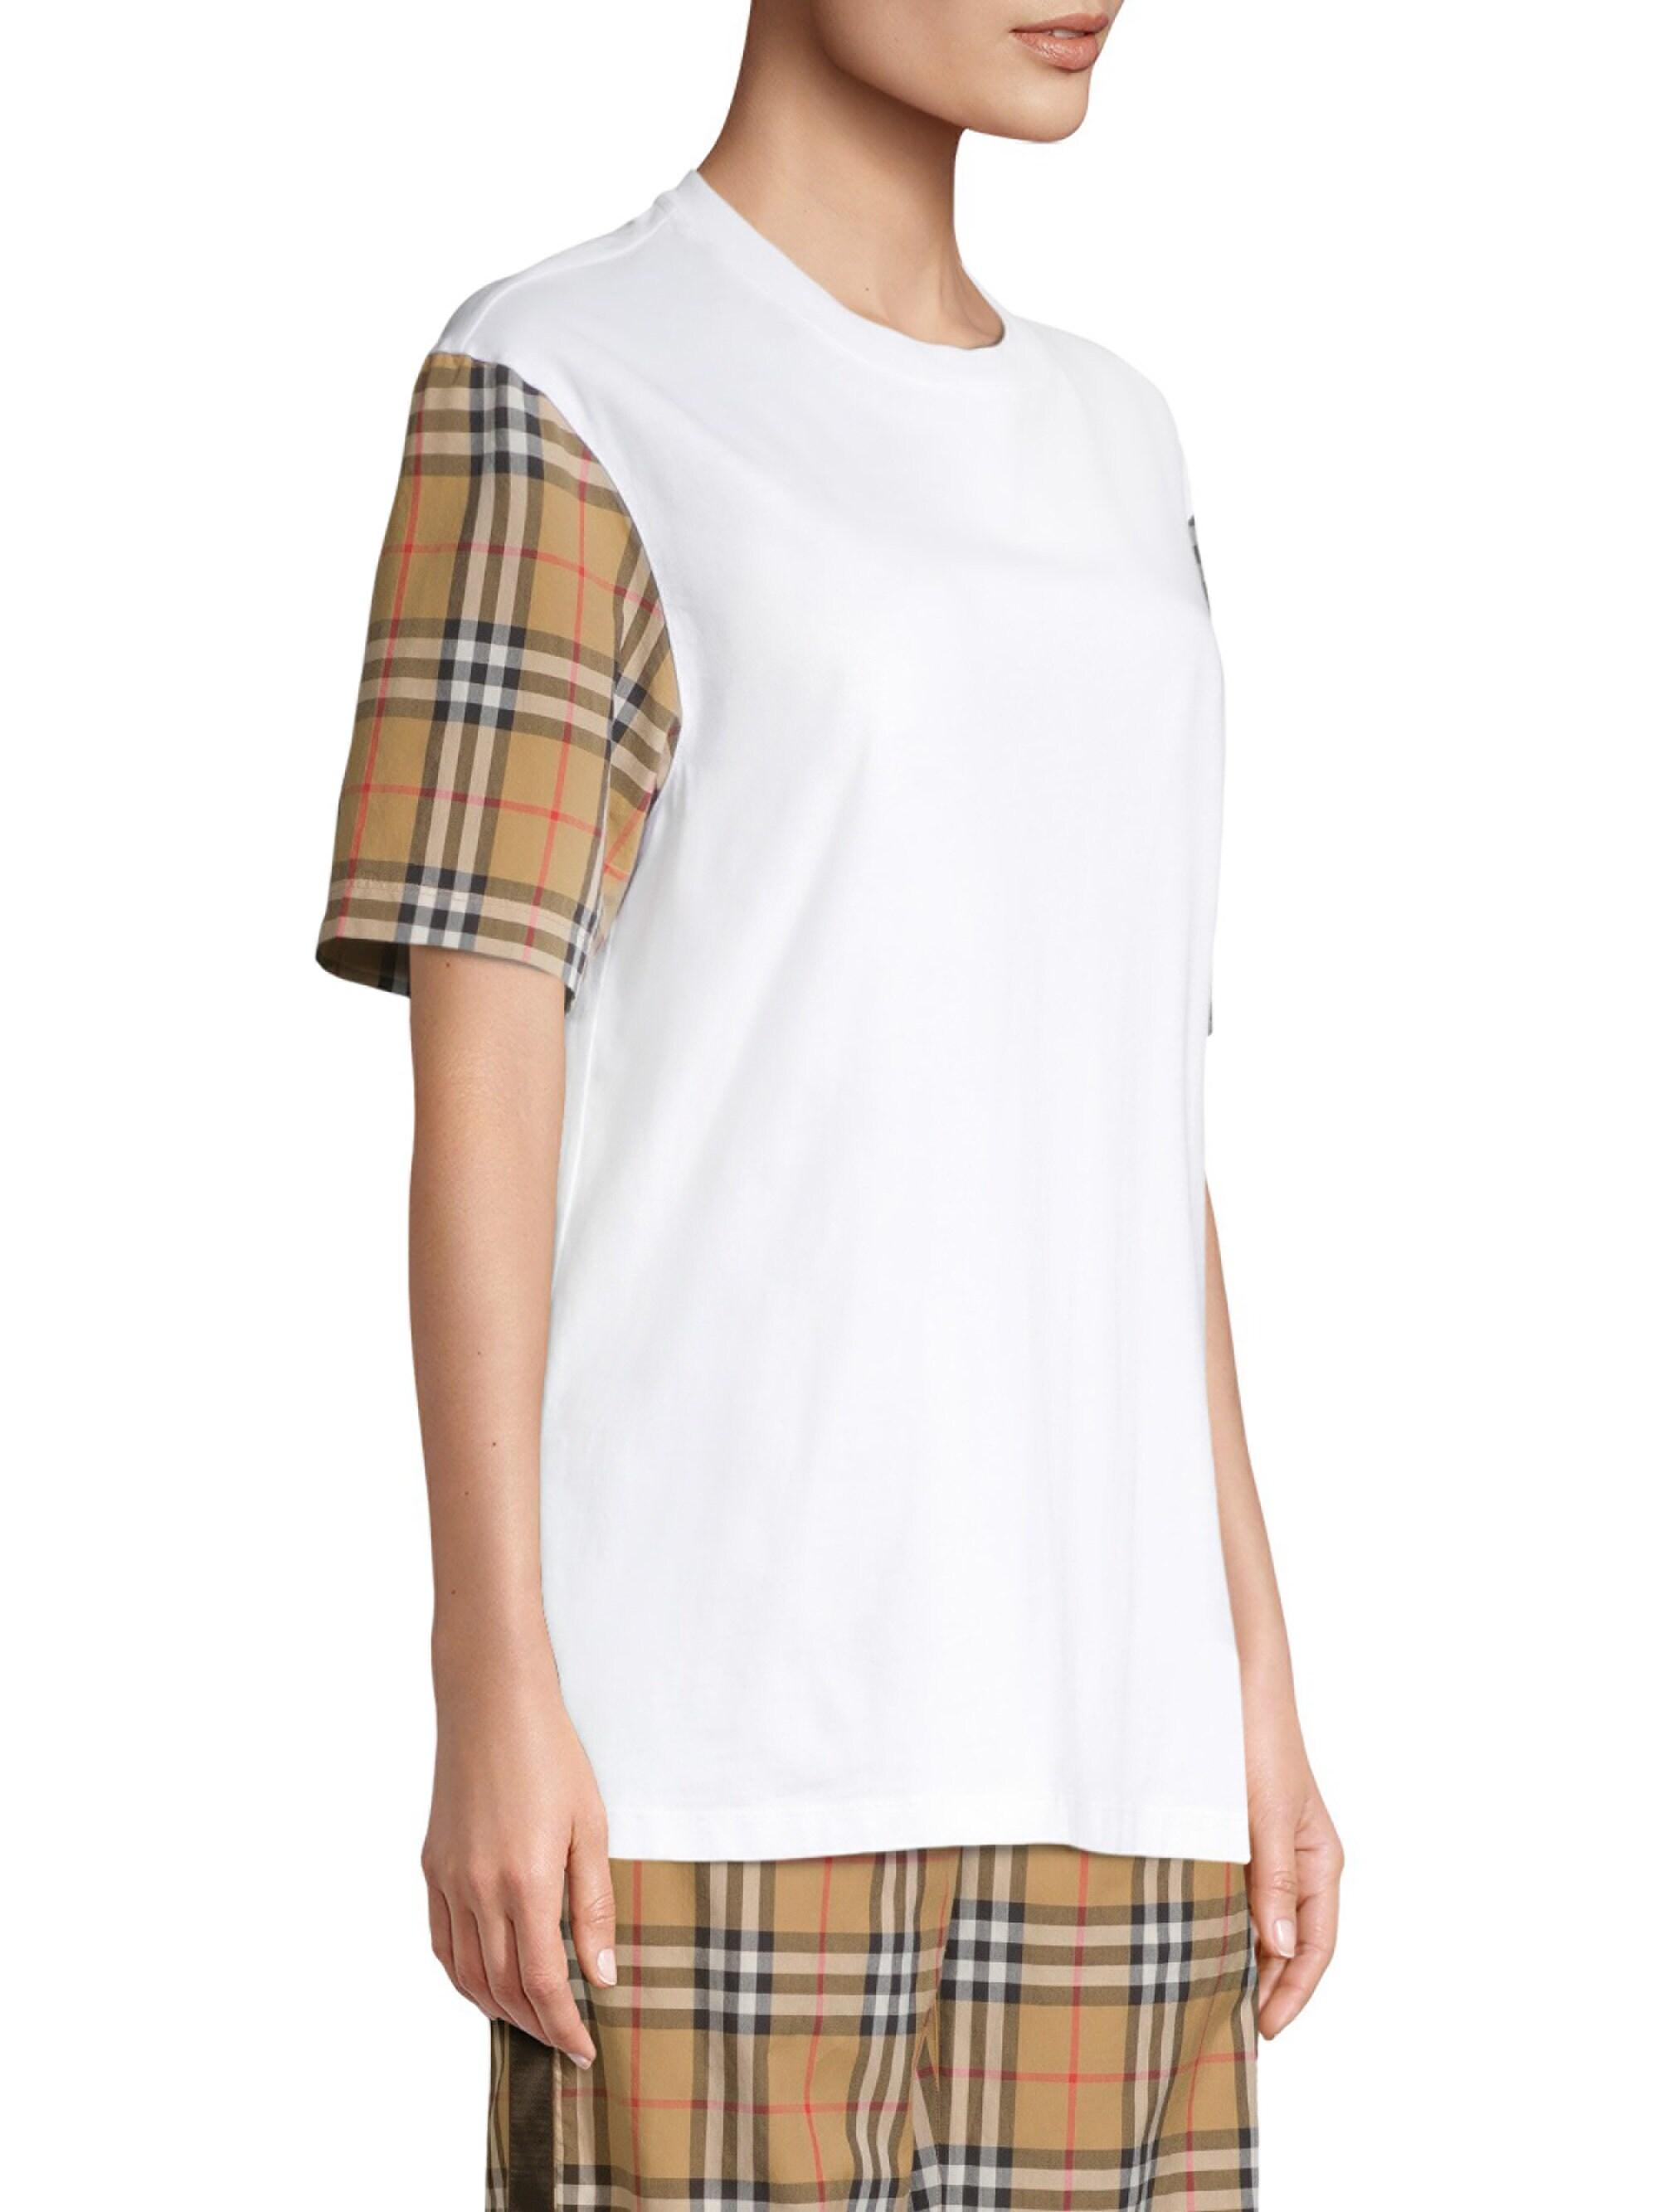 fddf07bee4 Lyst - Burberry Vintage Check Sleeve Cotton T-shirt in White - Save 30%